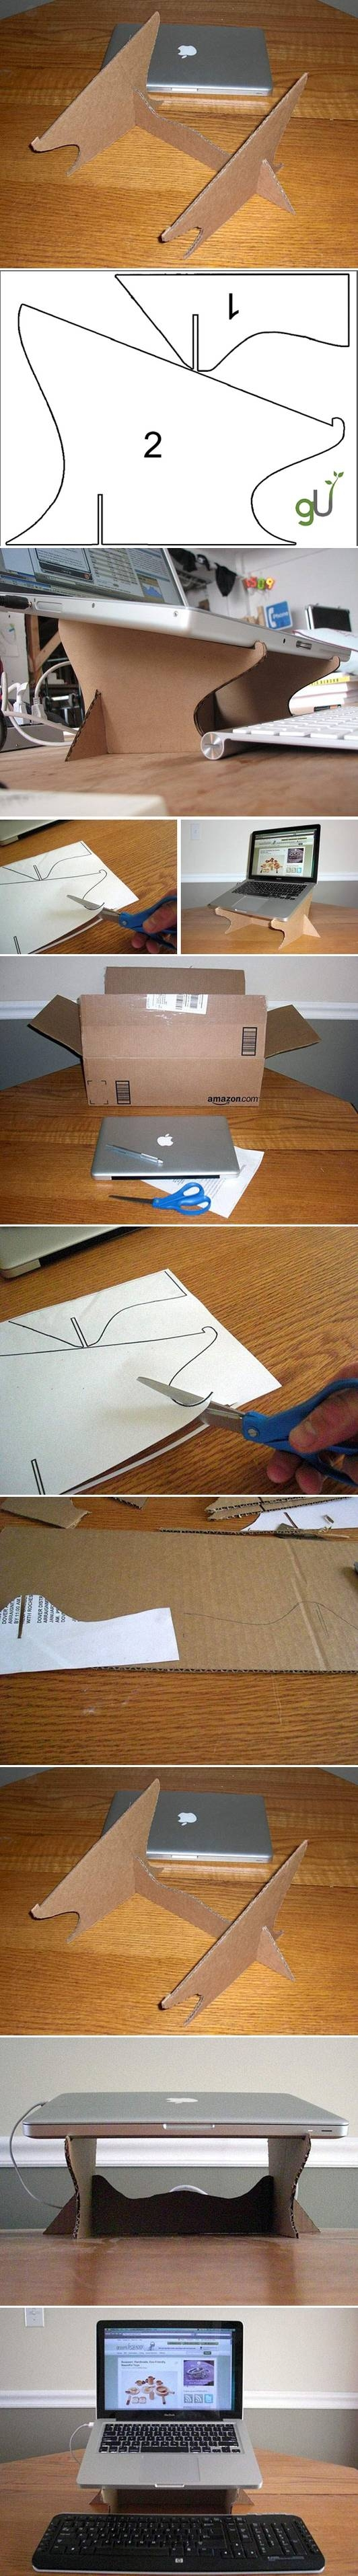 DIY Simple Cardboard Laptop Stand Pictures, Photos, and ...